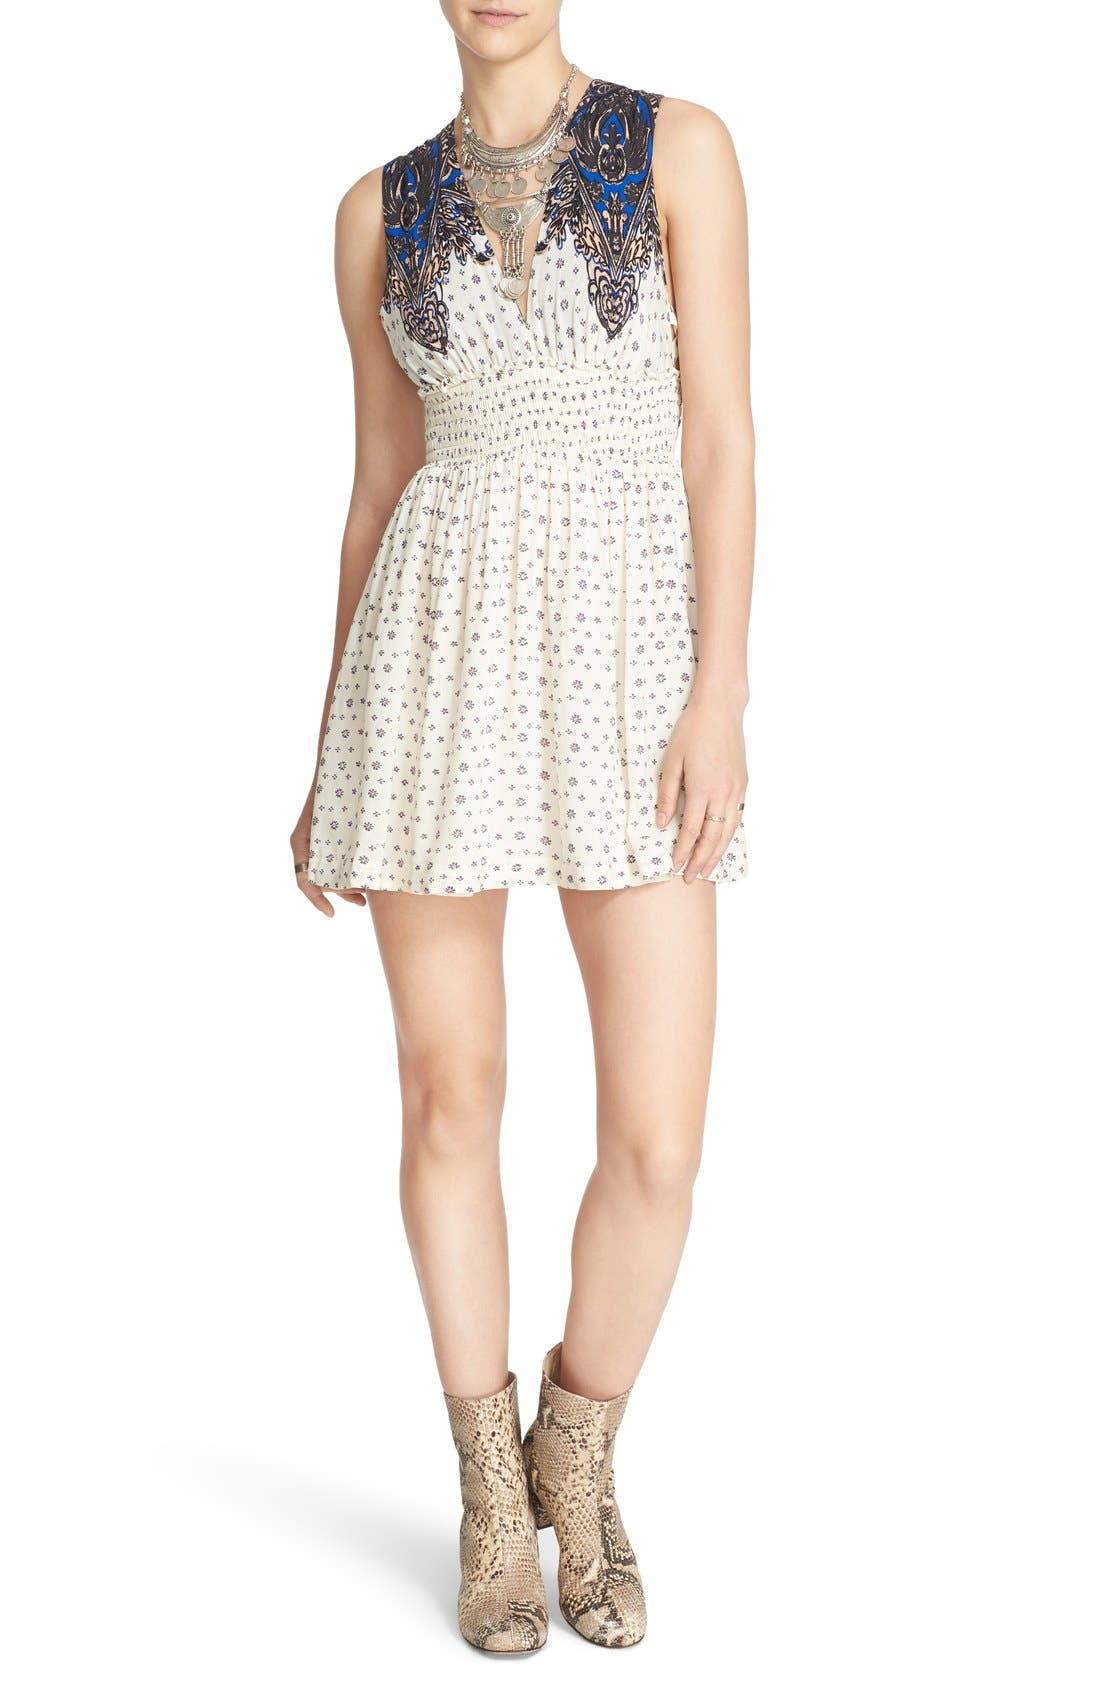 Alternate Image 1 Selected - Free People 'Walking Through Dreams' Fit & Flare Dress